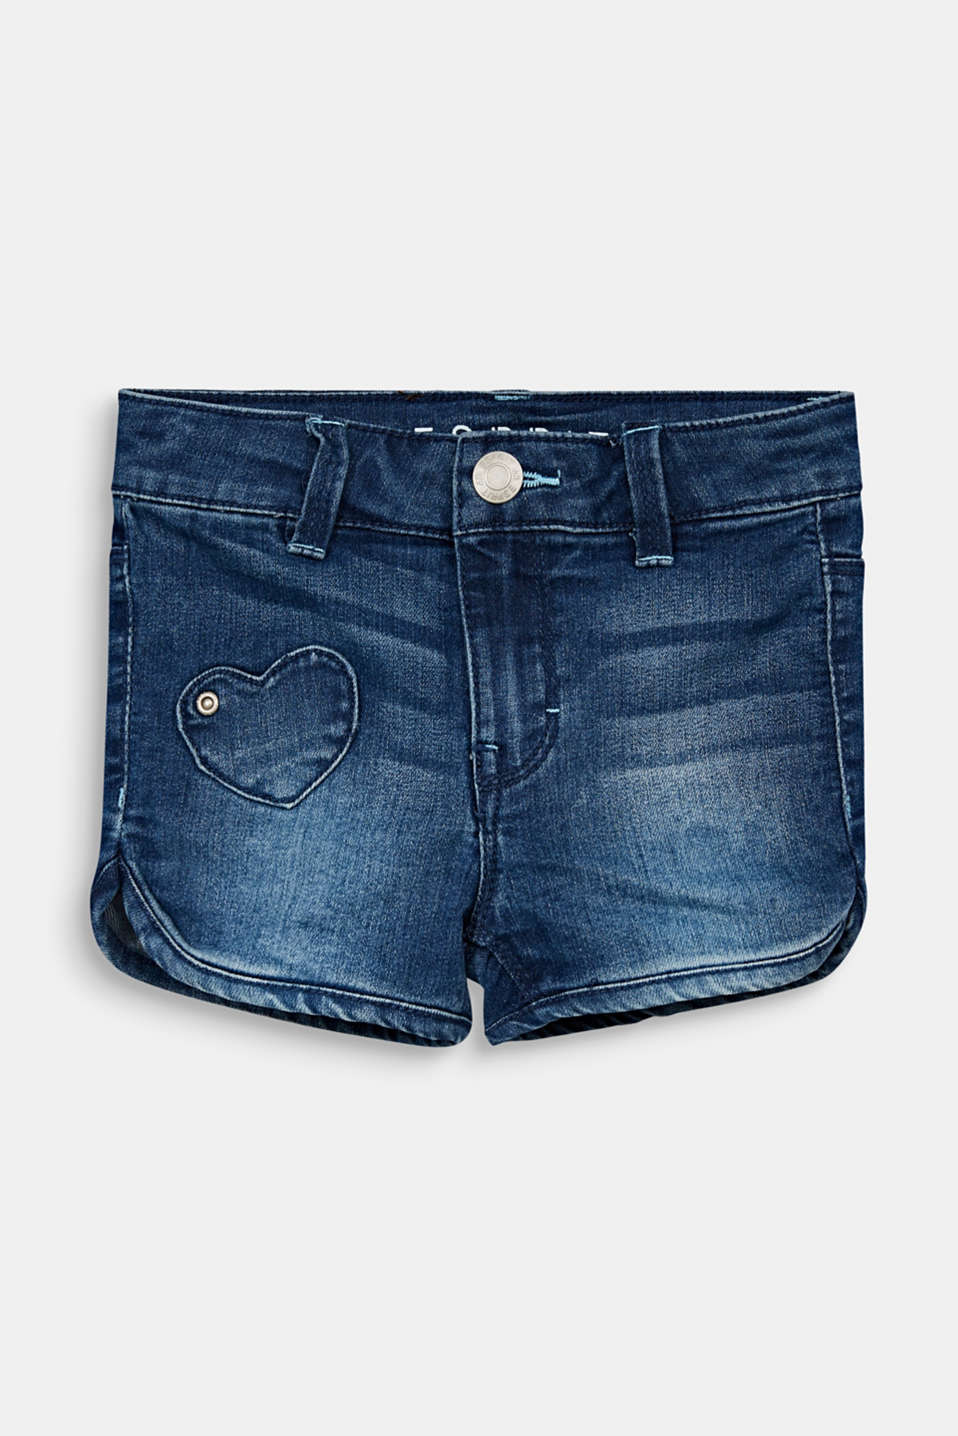 Esprit - Denimshorts med hjerte-patches